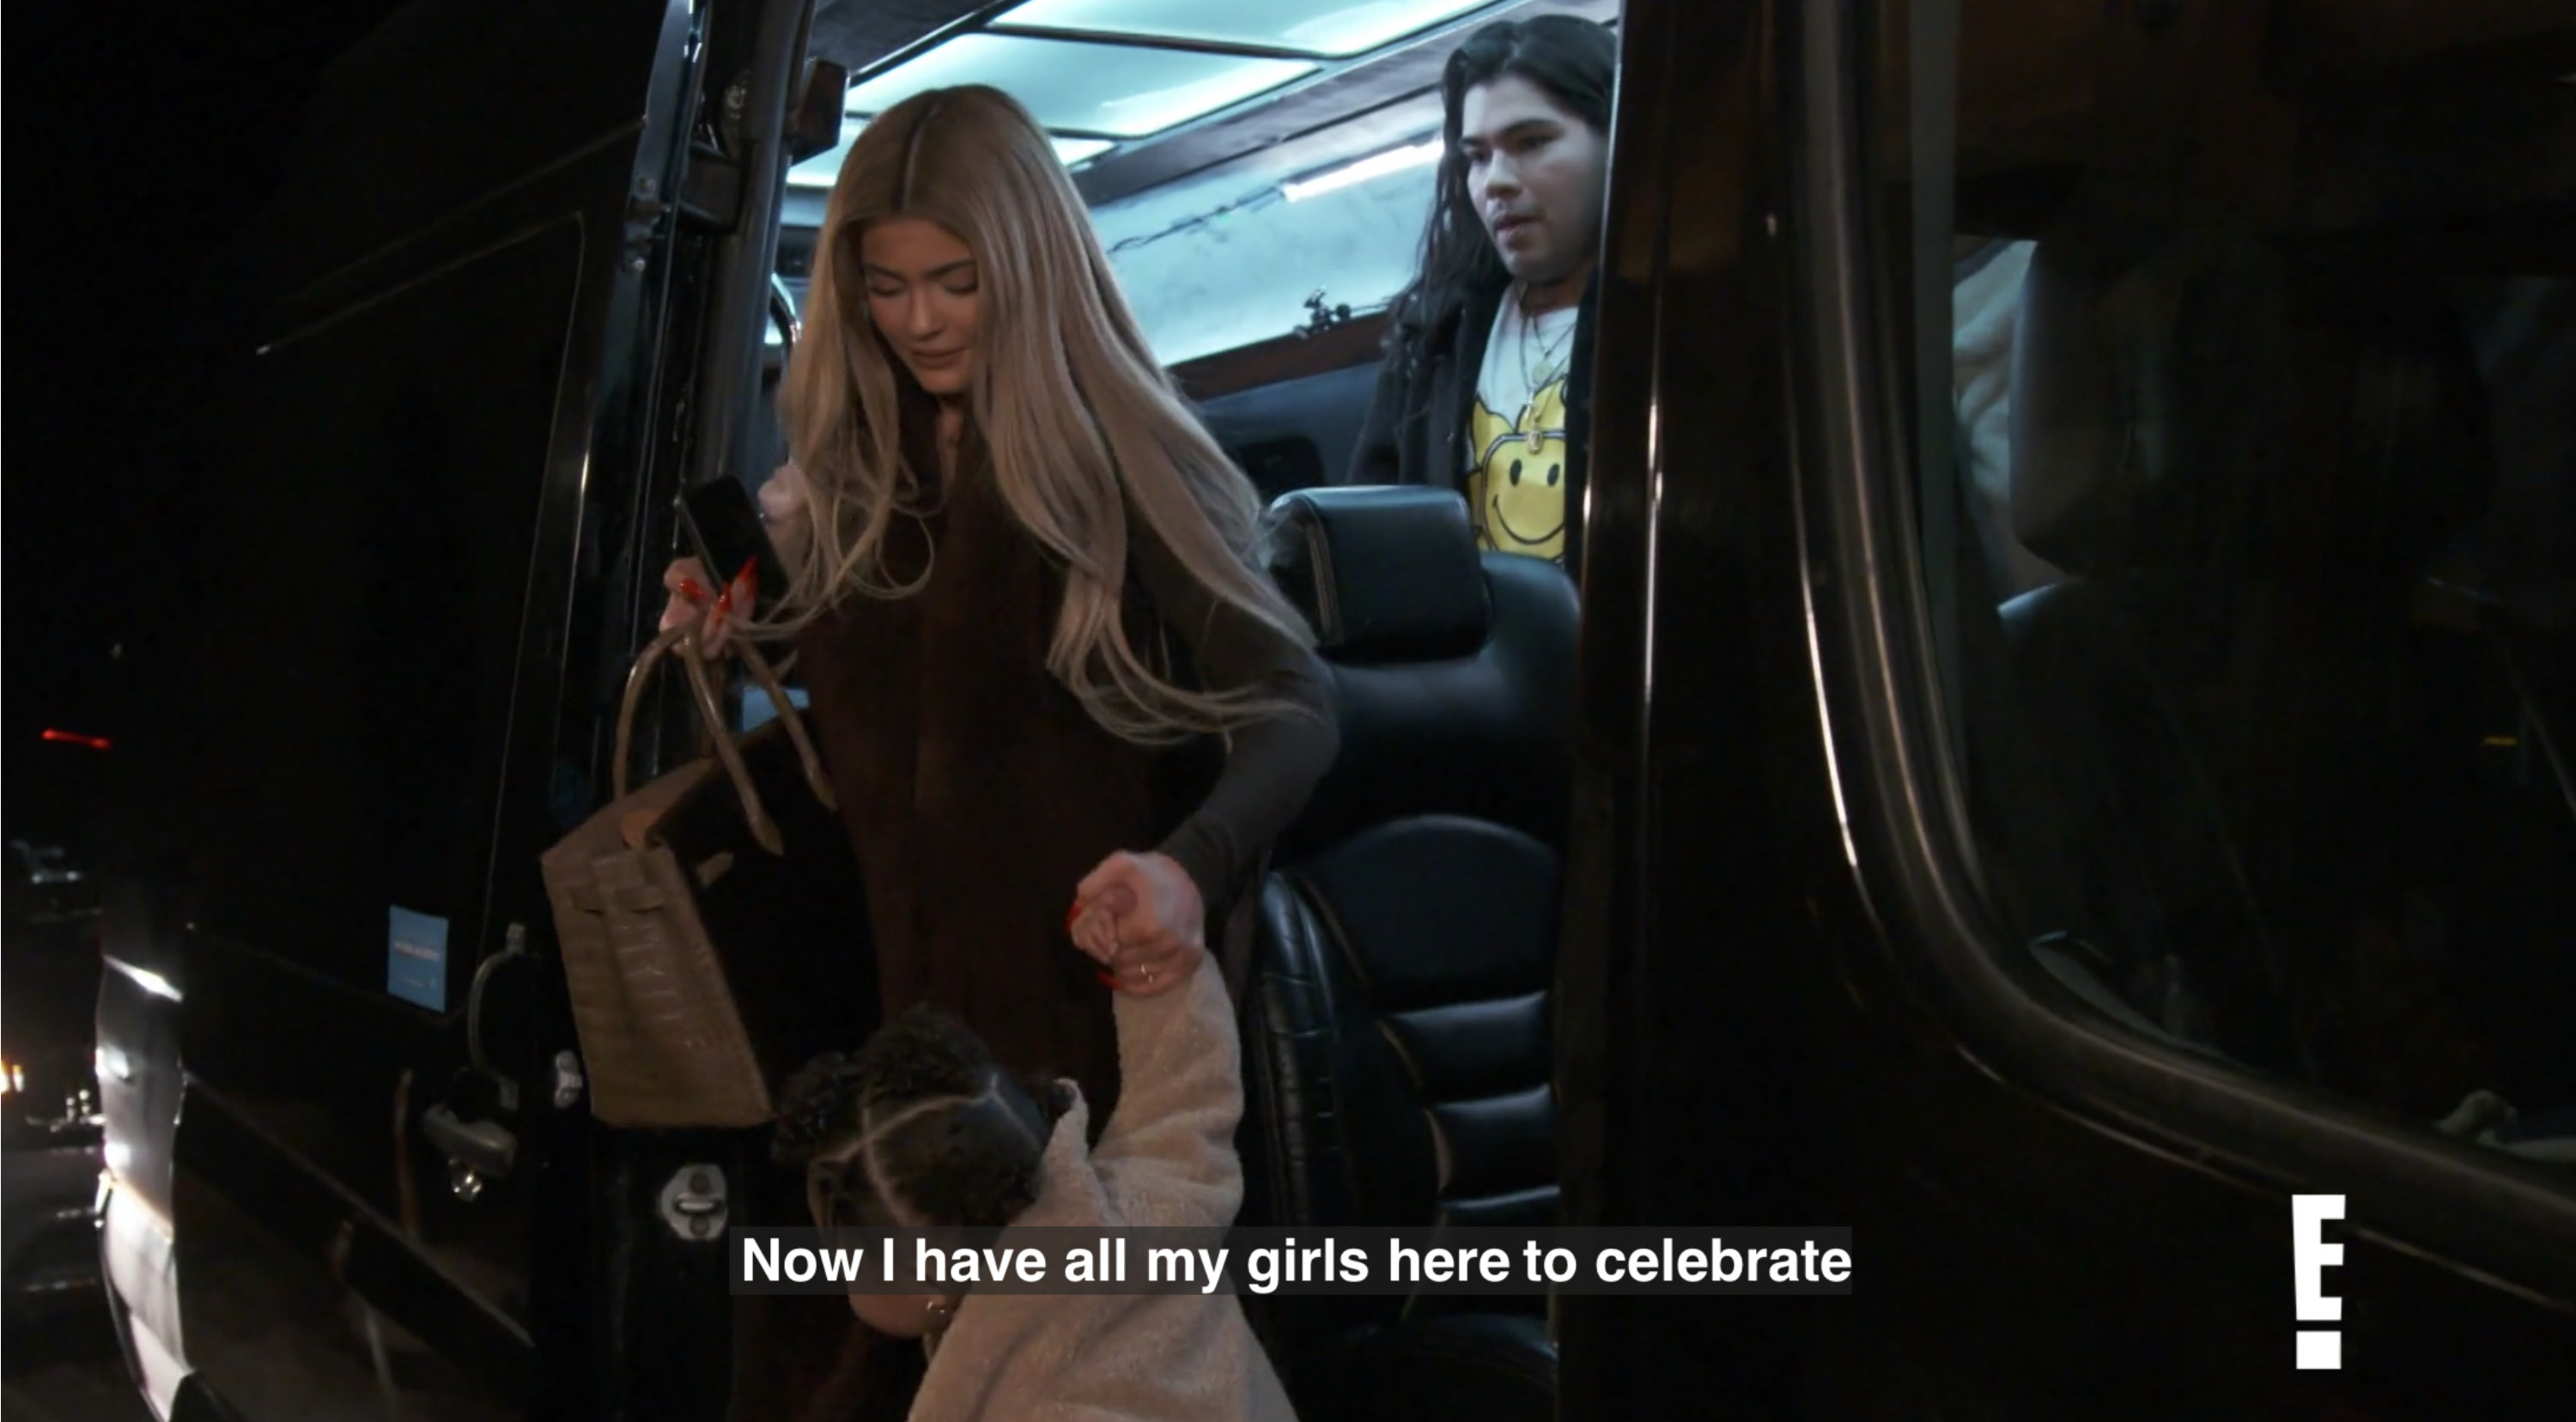 Kylie arriving with Stormie